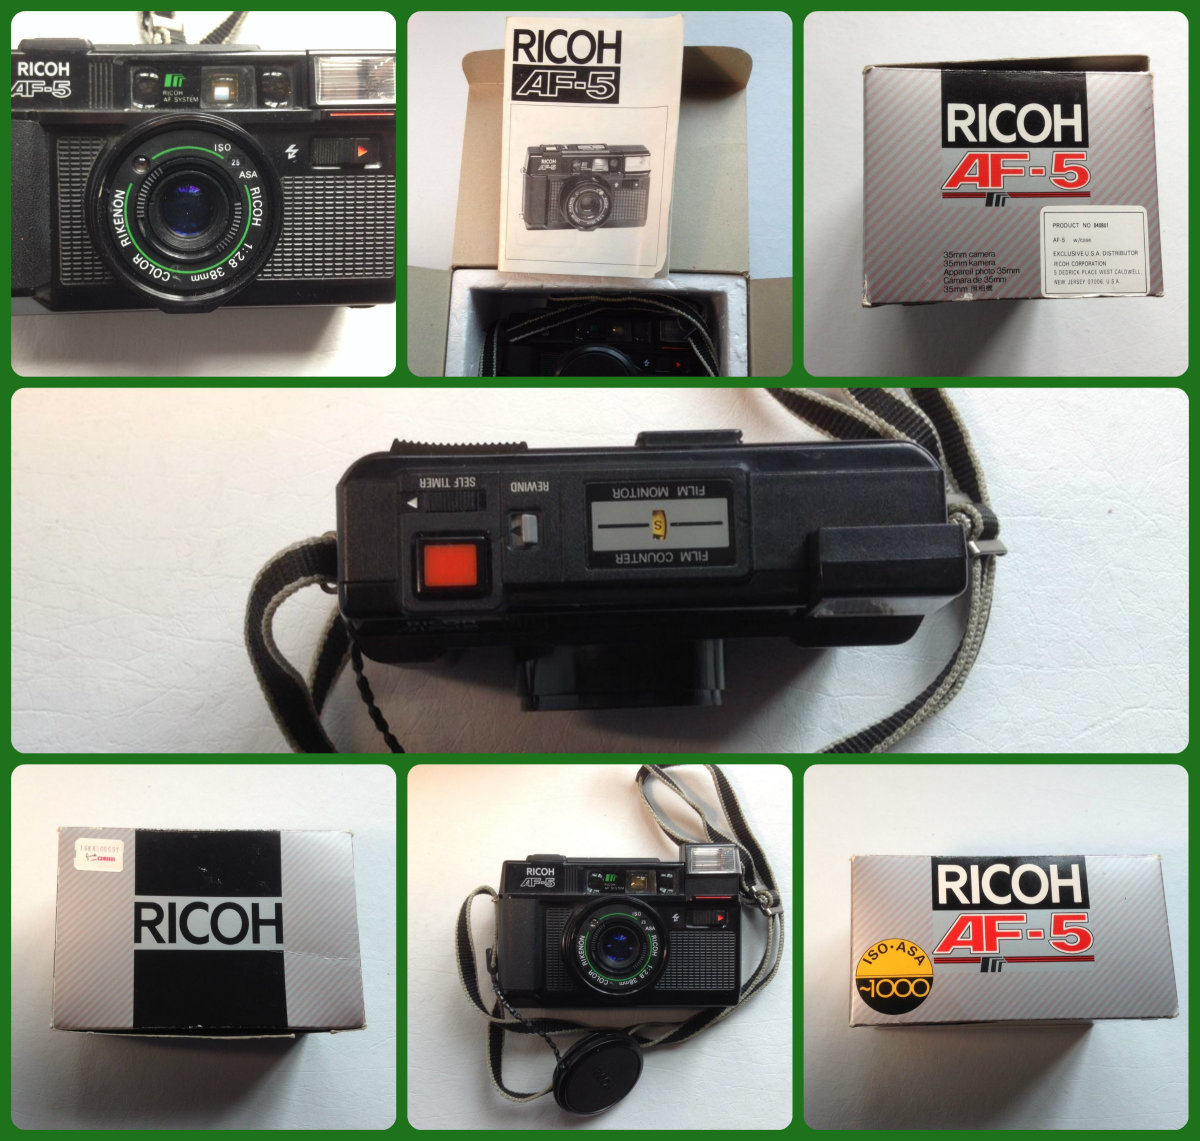 Made in the early 1980s the Ricoh AF-5, it was a sophisticated well-made point and shoot auto-focus compact camera for 35mm film with an integral flash and auto-focus, and was manufactured exclusively by the Ricoh Camera Company.